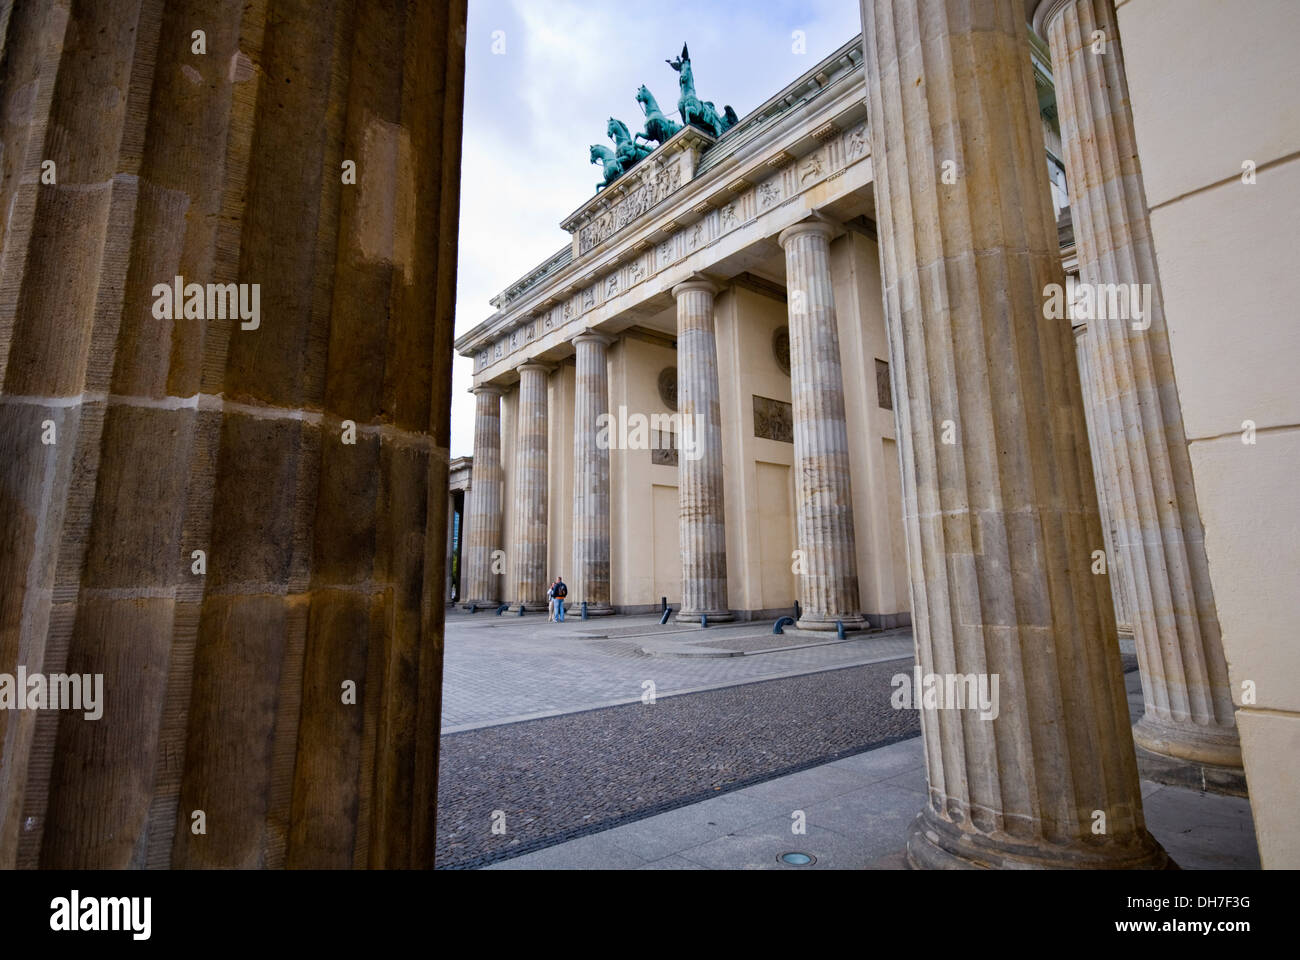 La porte de Brandebourg à Berlin, Allemagne Photo Stock